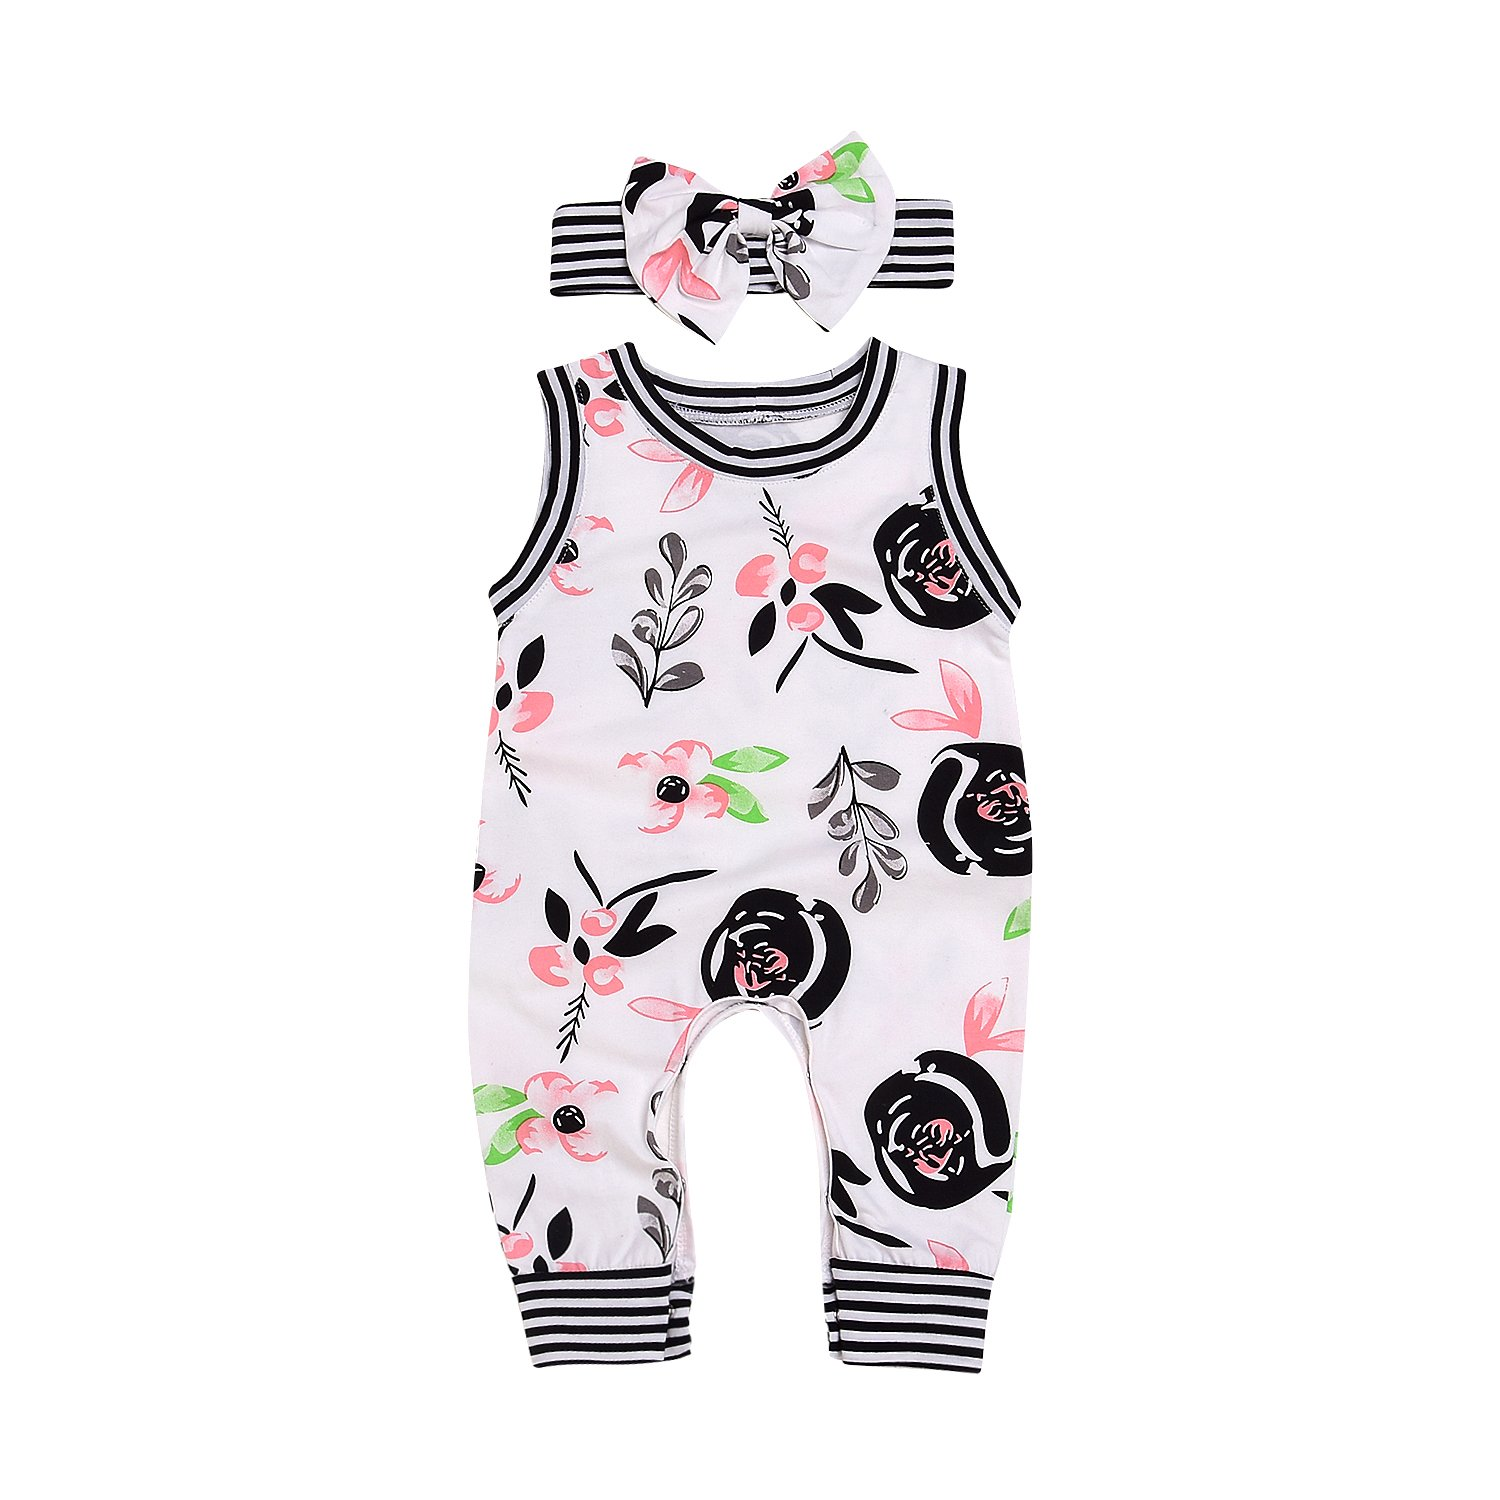 Infant Baby Girl Summer Rainbow Stripe One Piece Romper Bodysuit Clothes Set